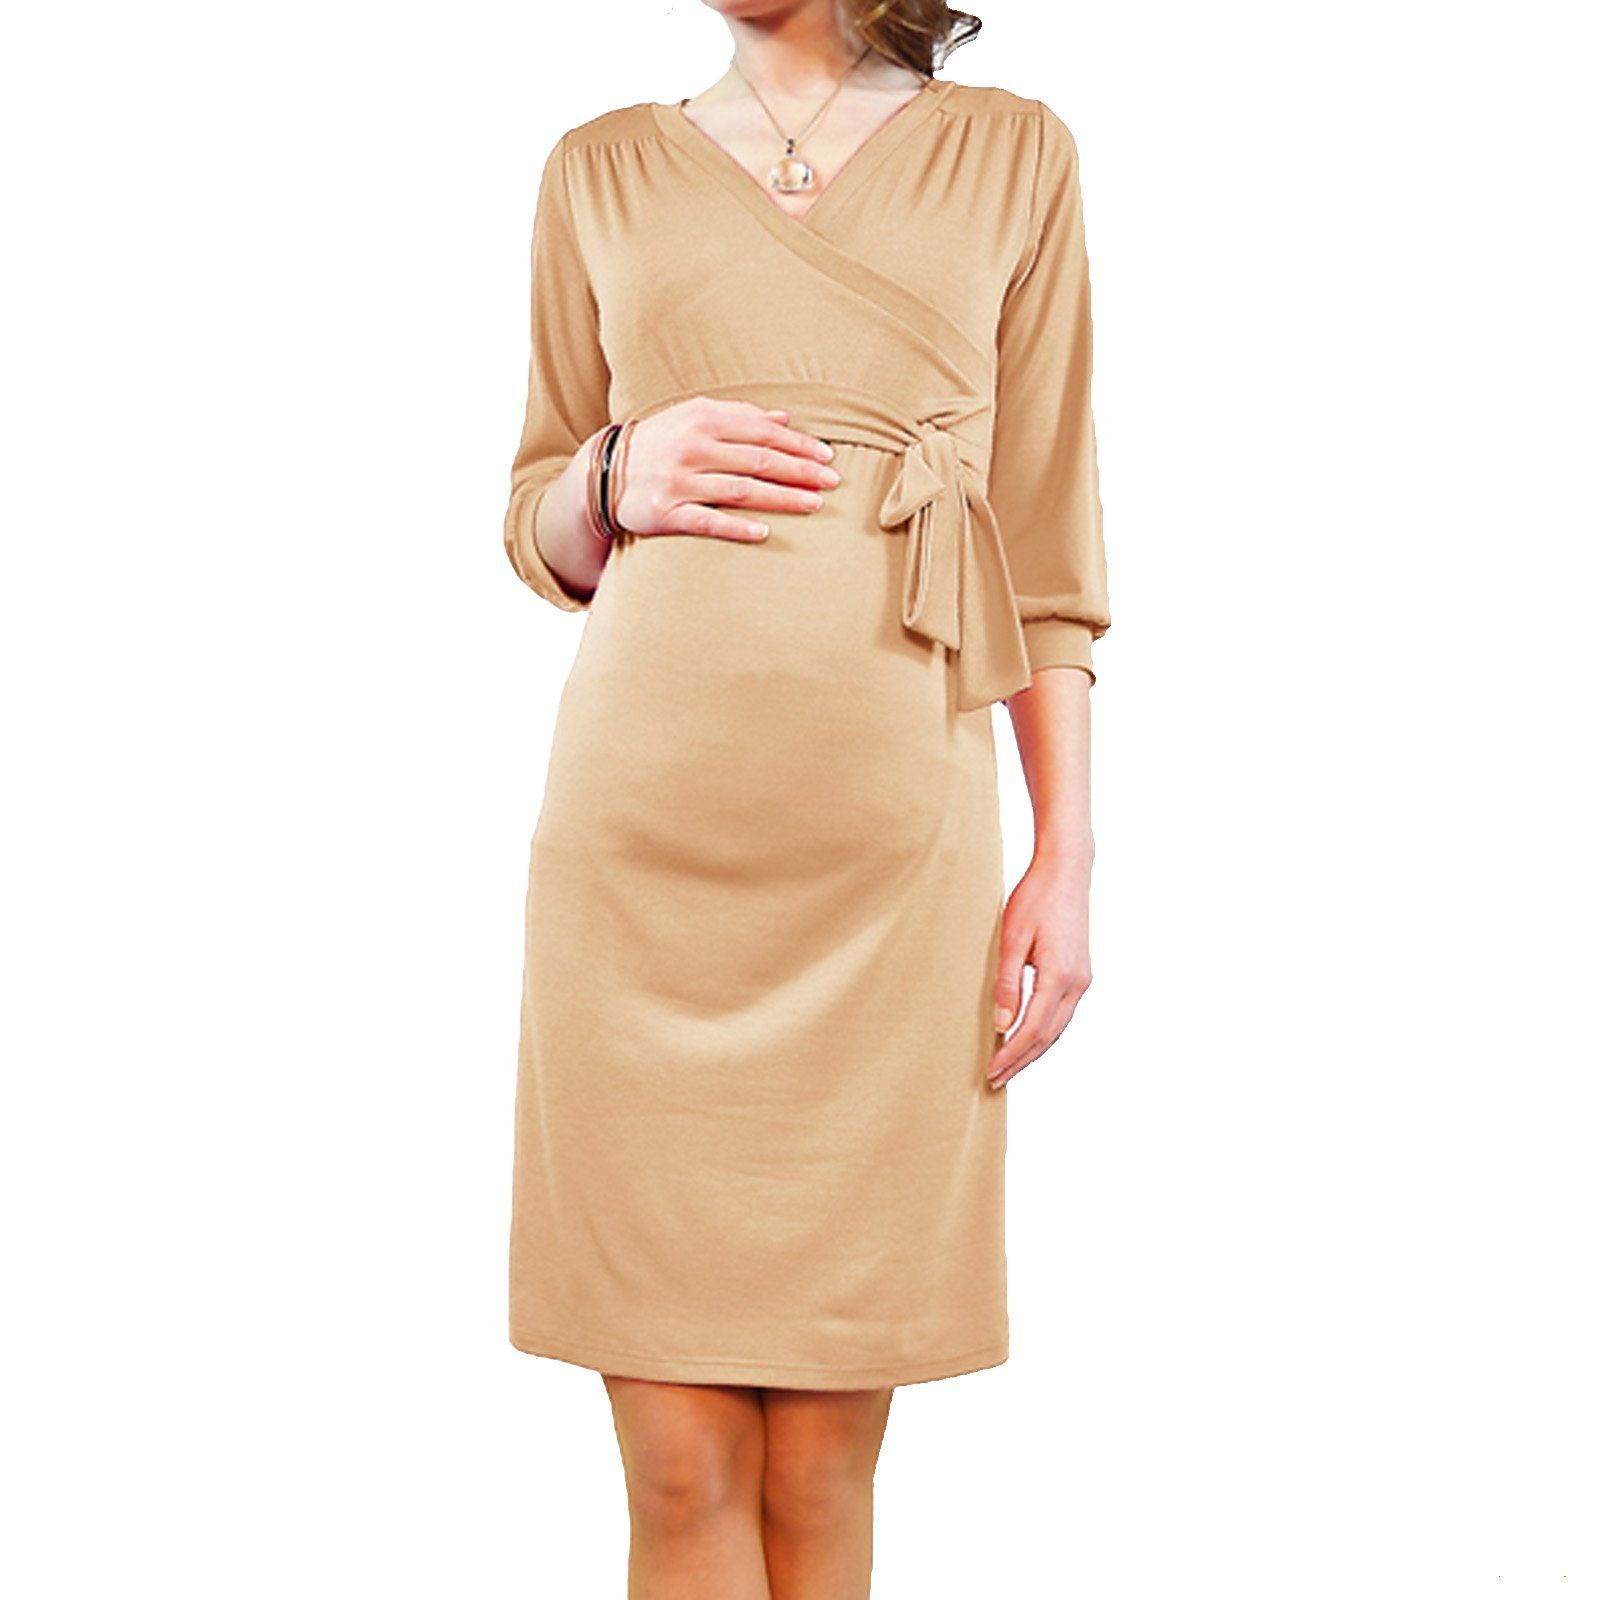 Fancy that clothing womens maternity dress stretch dress 34 fancy that clothing womens maternity dress stretch dress 34 sleeve womens maternity dress ombrellifo Choice Image